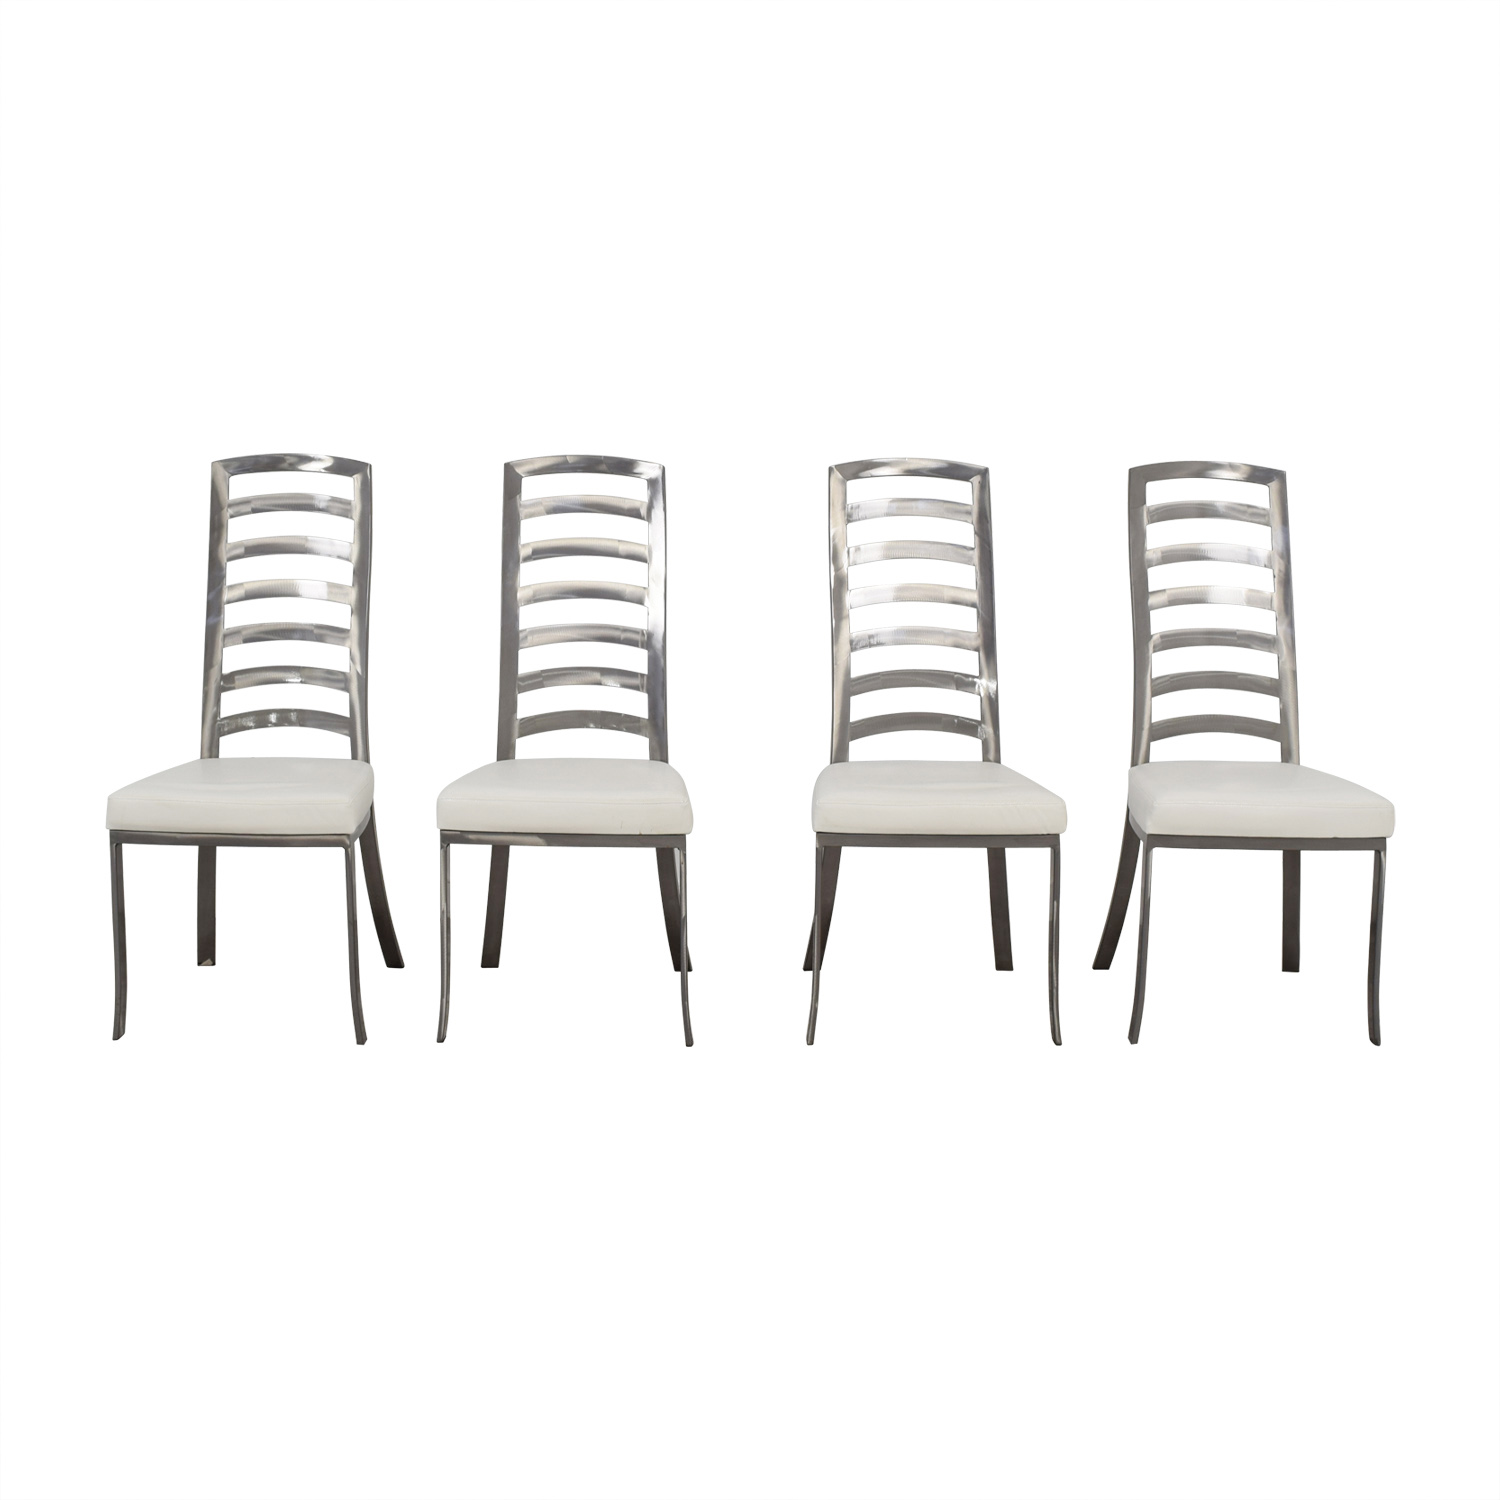 Johnston Casuals Johnston Casuals White and Pewter Dining Chairs Dining Chairs